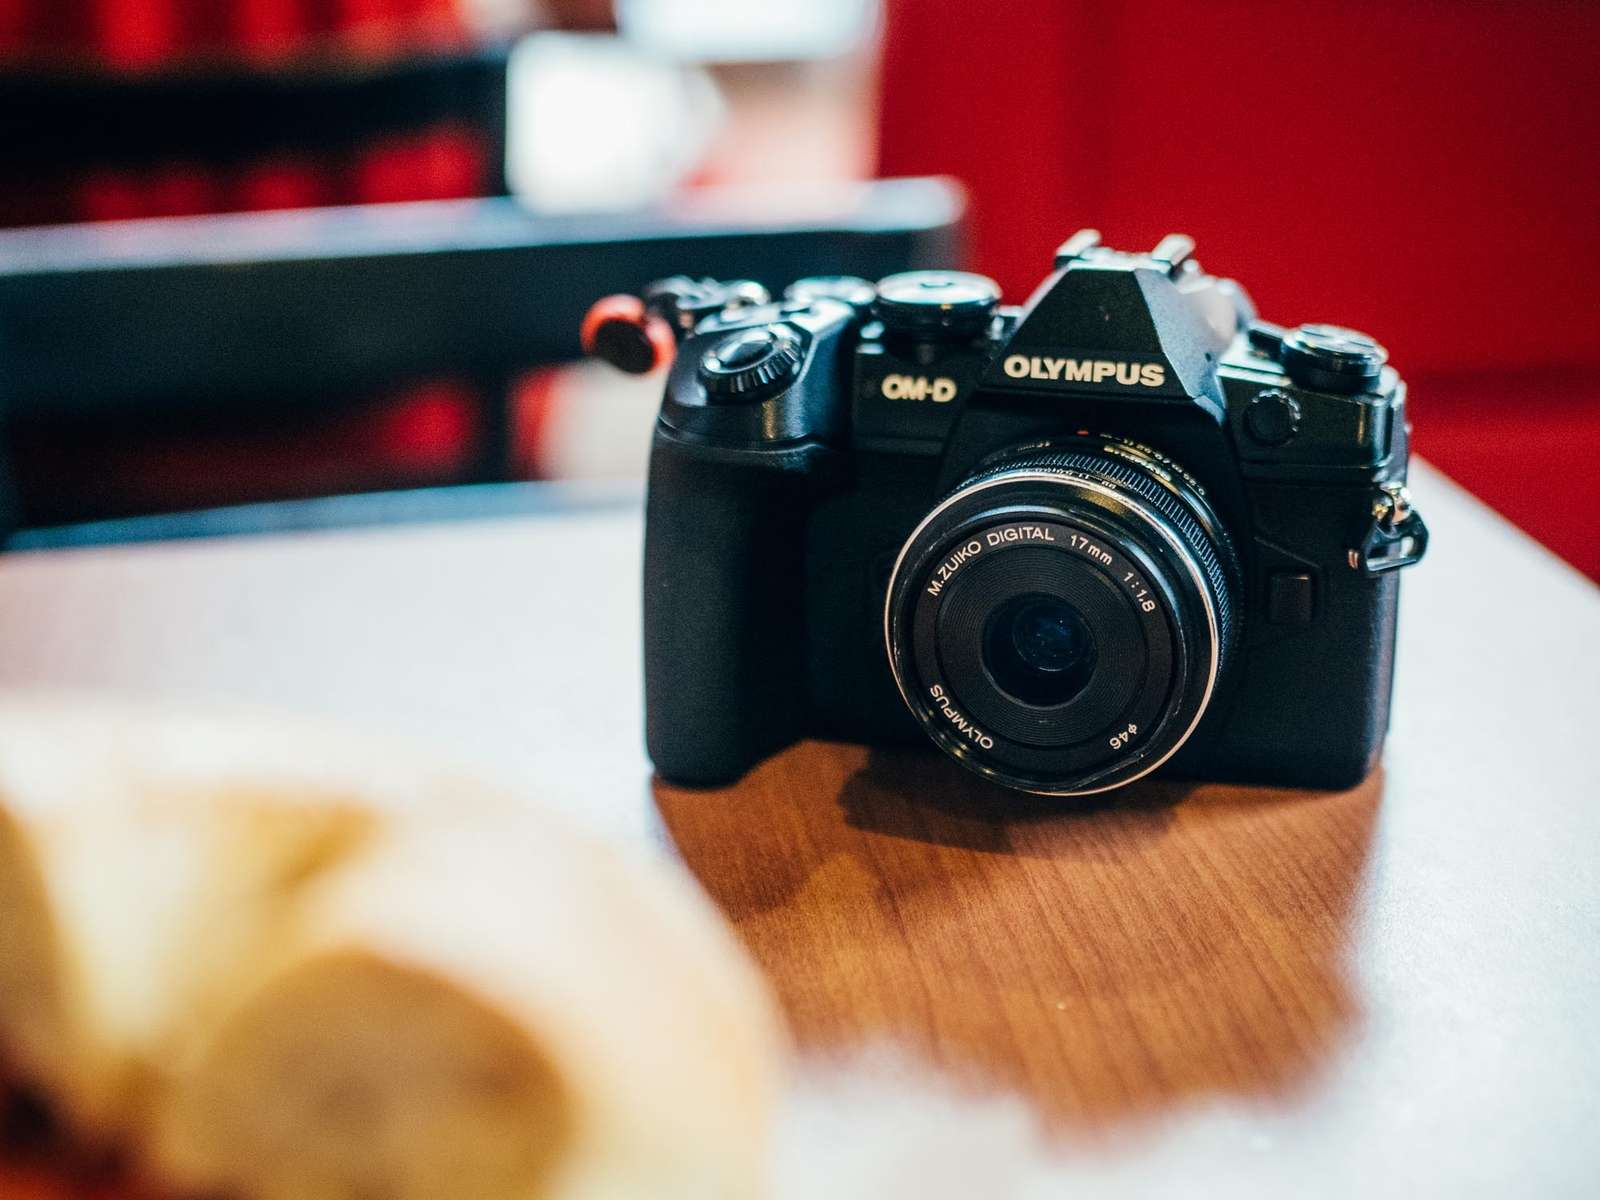 7 Things To Know About Photographing Food Olympus Om D E M5 Mark Ii Body Only Now I Bring My Or M1 With Me Paired Mzuiko 17mm F18 Its The Perfect Photography Combination